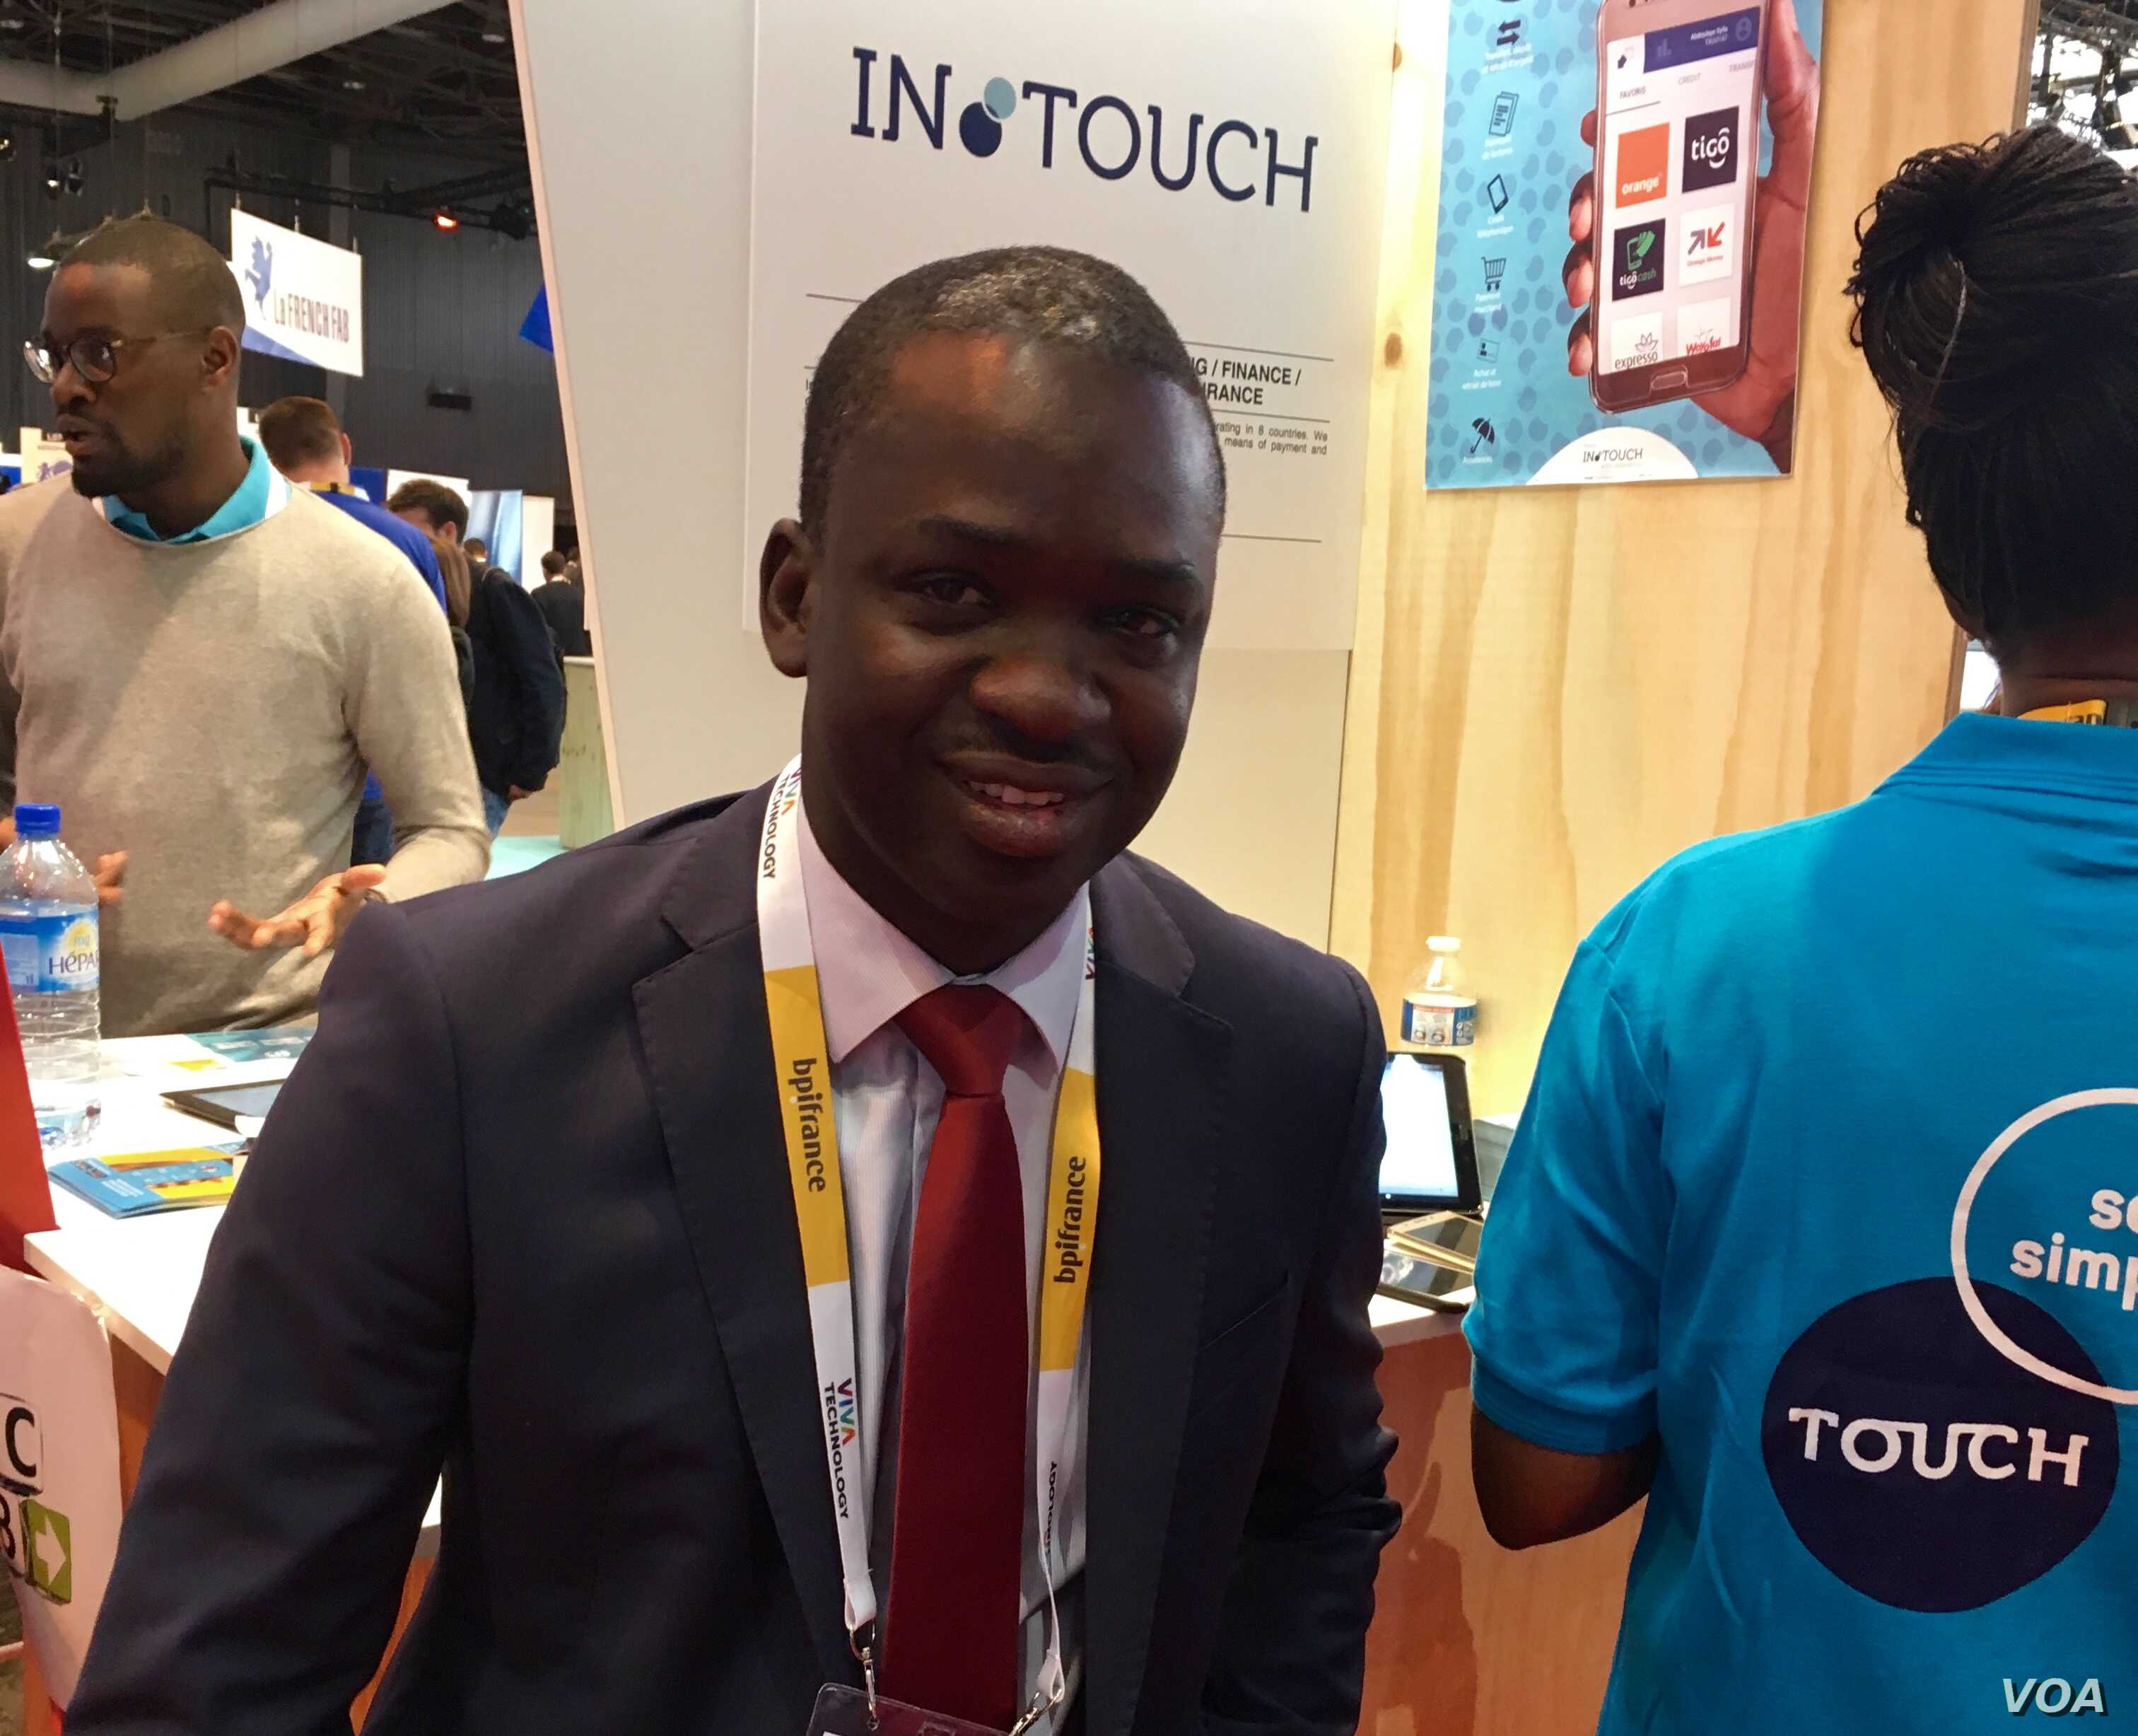 Senegalese entrepreneur Omar Cisse is promoting an app that helps to streamline mobile phone banking. (VOA/ L. Bryant)